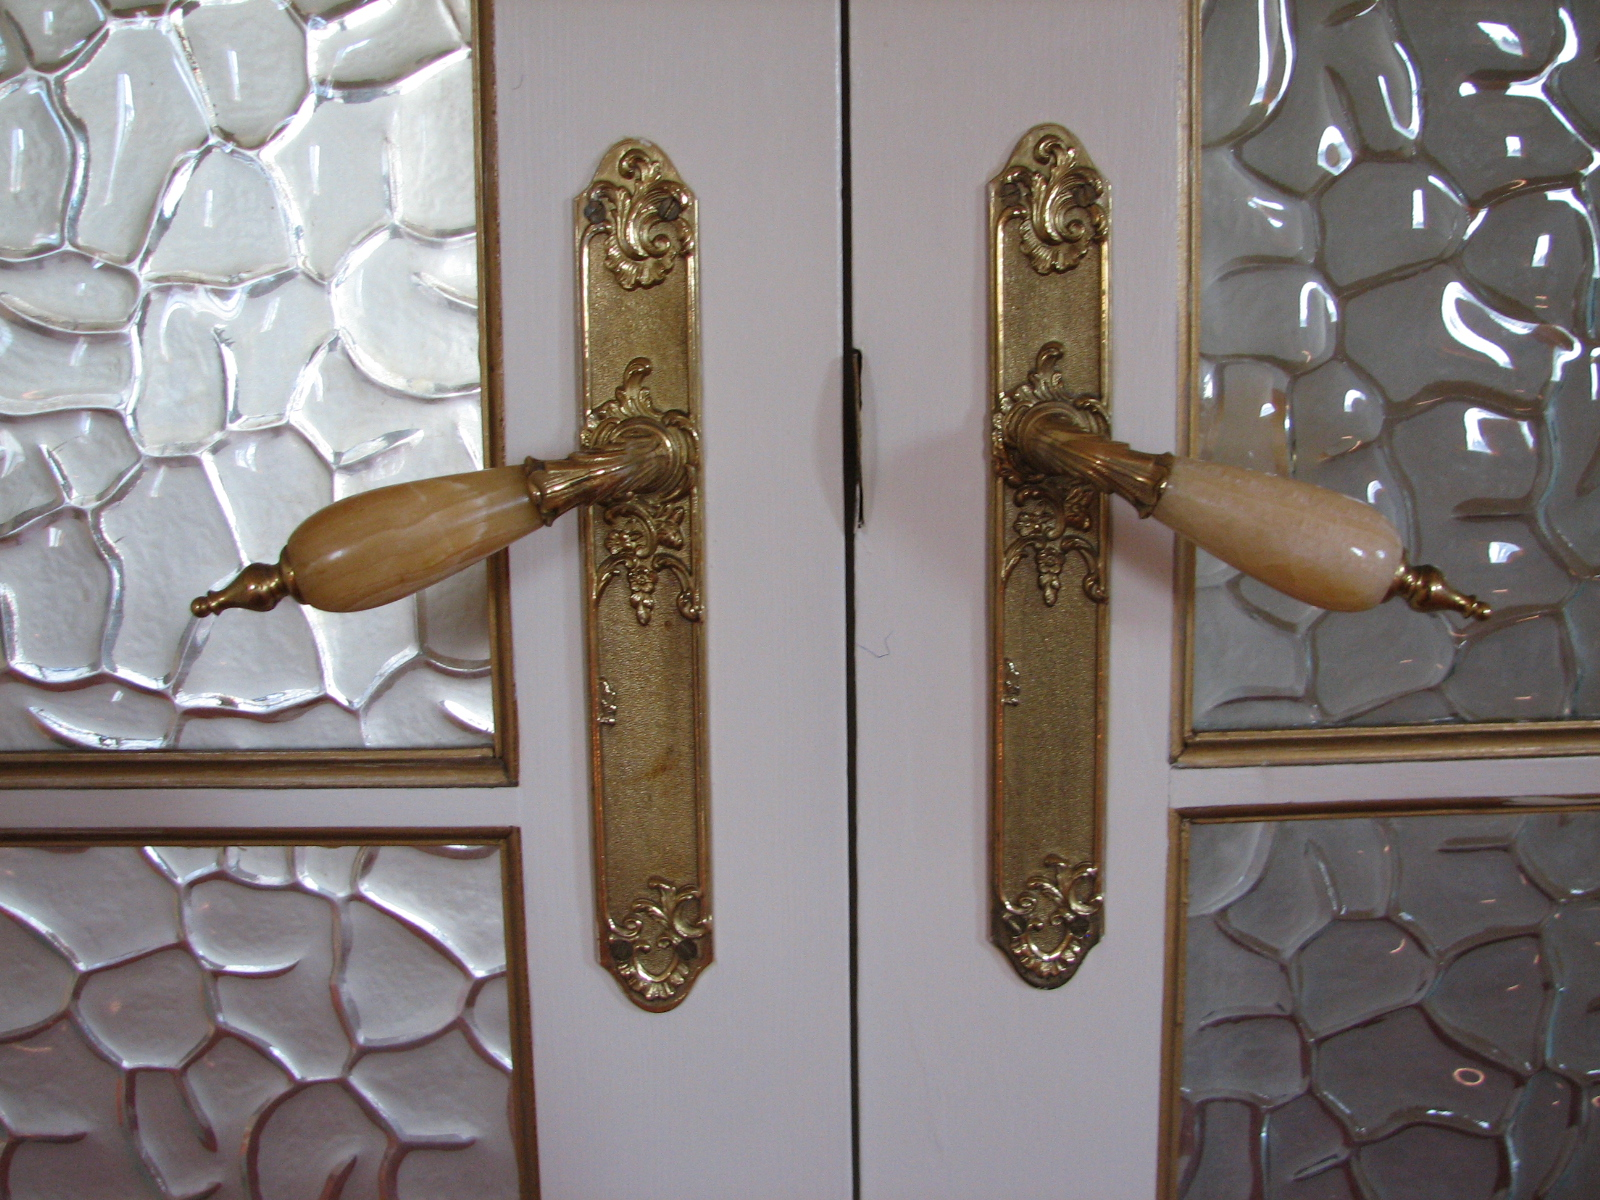 rubbed handleset door hand doorknobs oil left dp with tubular amazon in antique levers style com bronze backset arts and crafts hardware handles hammered